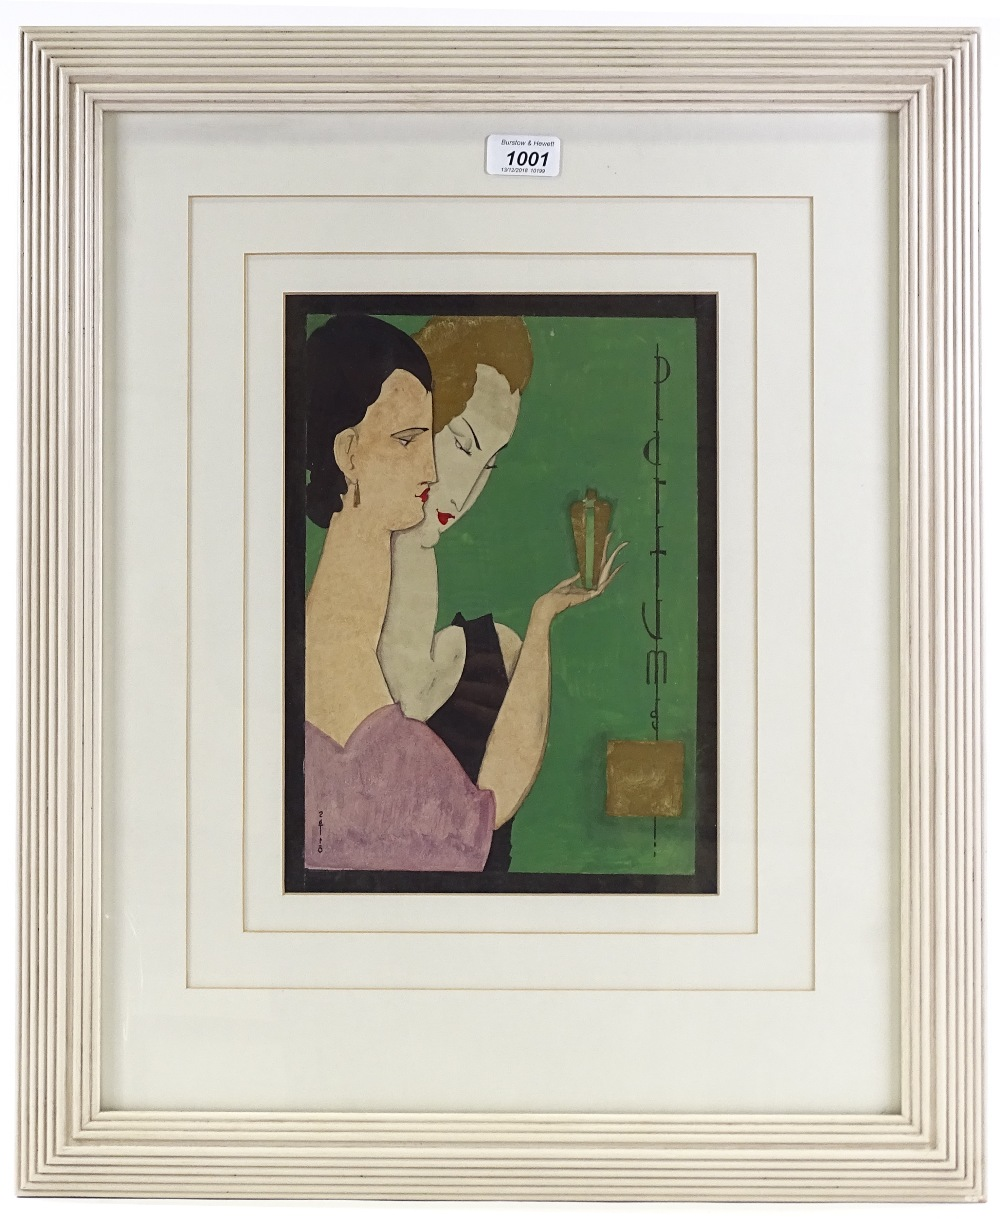 Lot 1001 - Albert Victor Ormsby Wood (1904-1977)